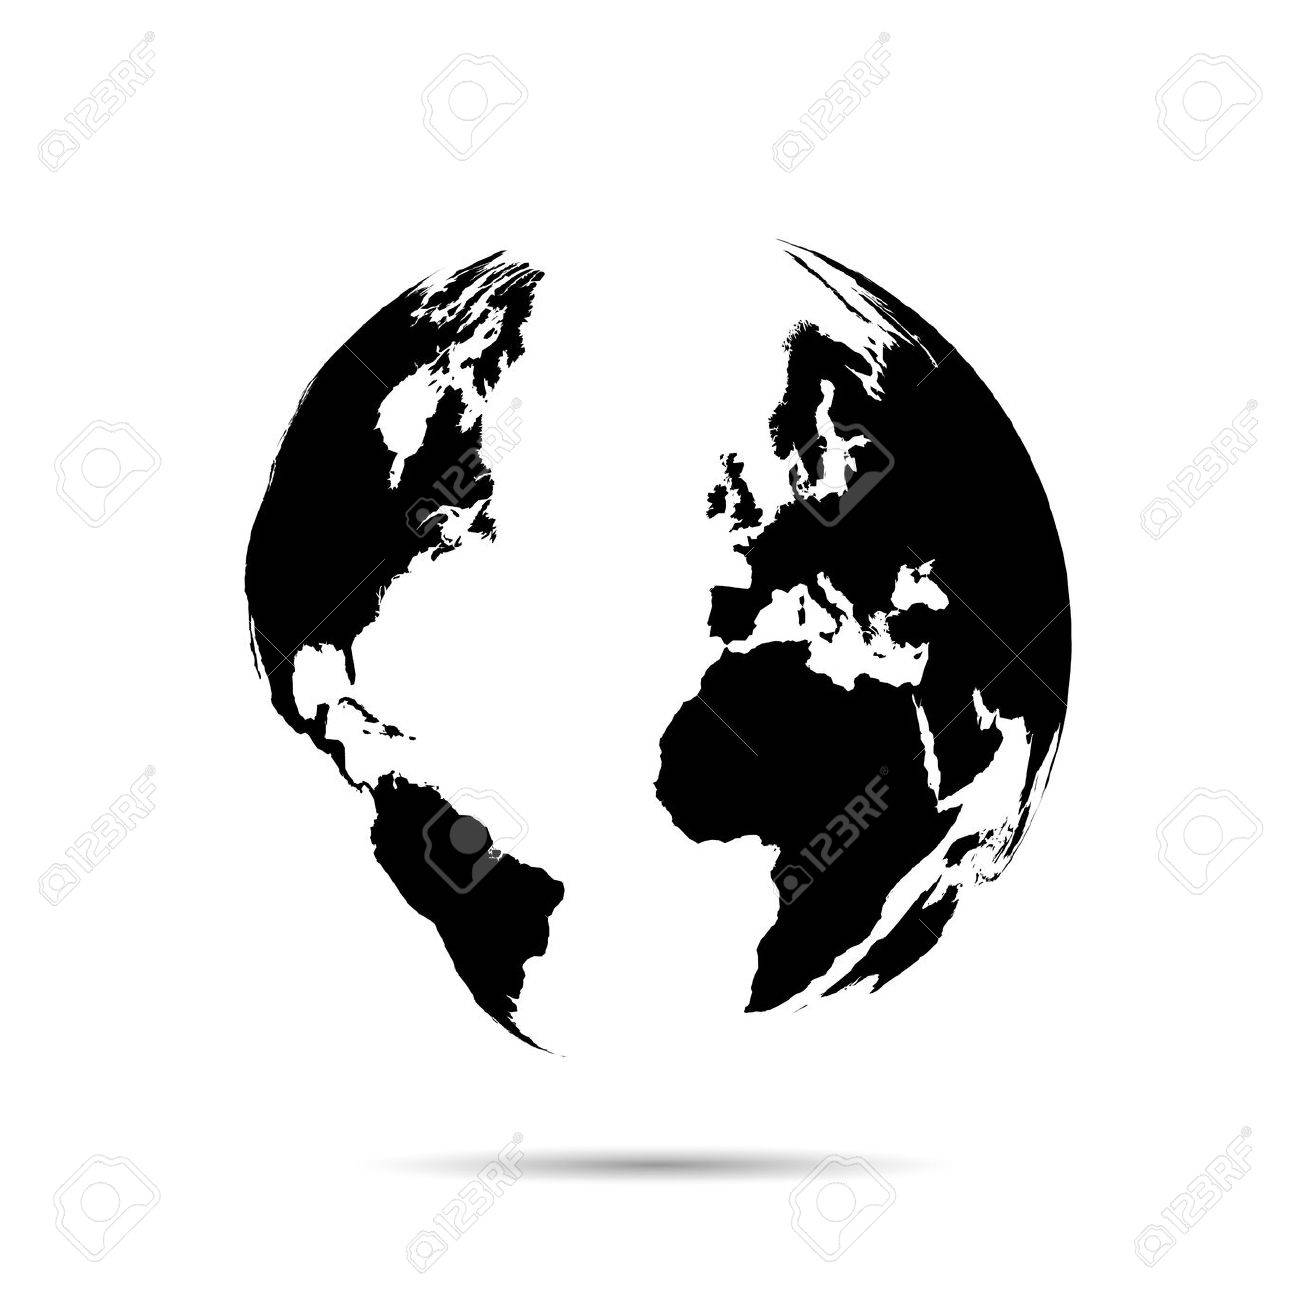 Illustration of a world map isolated on a white background. - 29340462